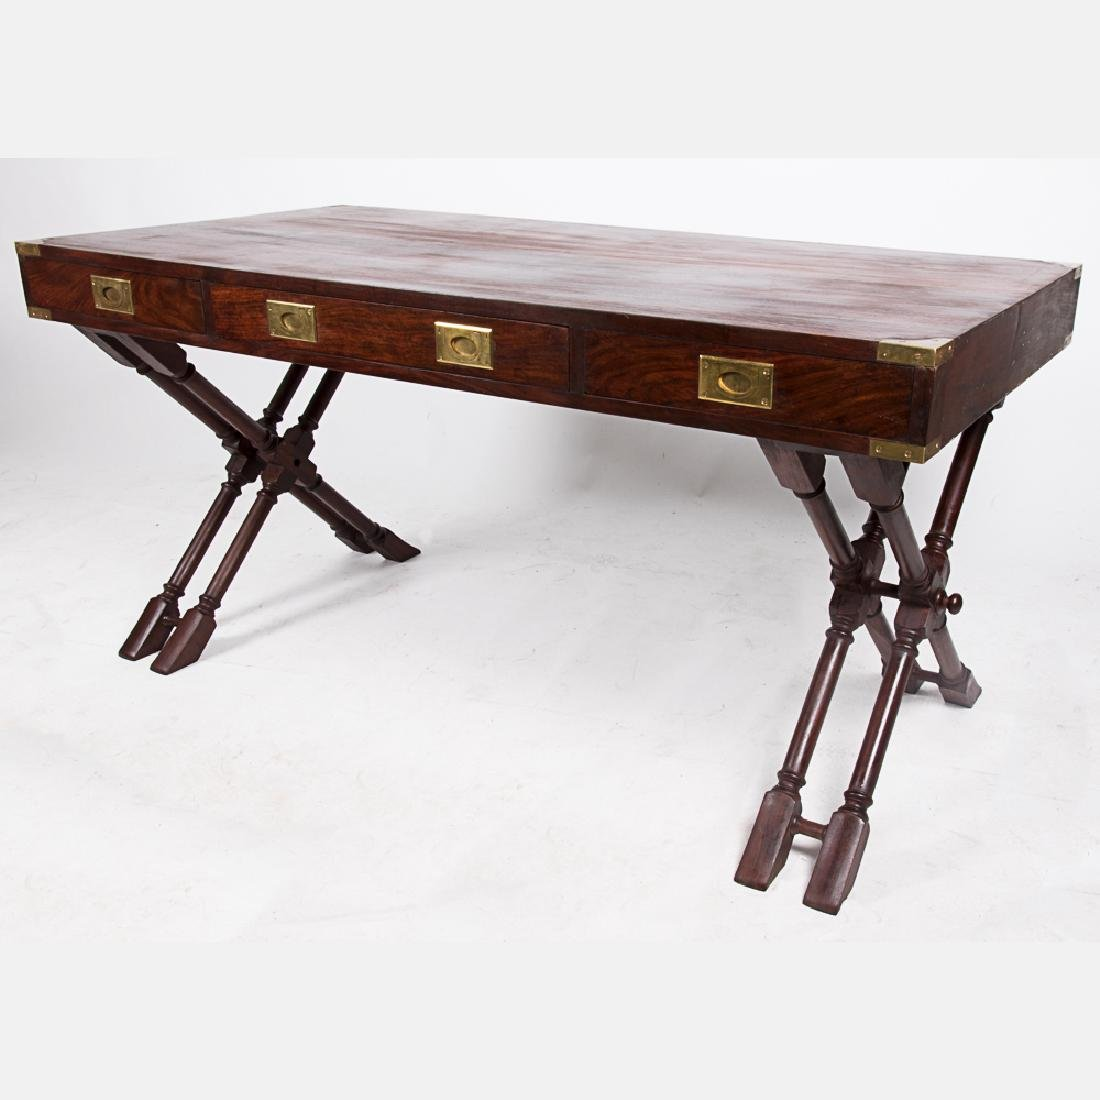 A Campaign Style Mahogany and Brass Desk, 20th Century.